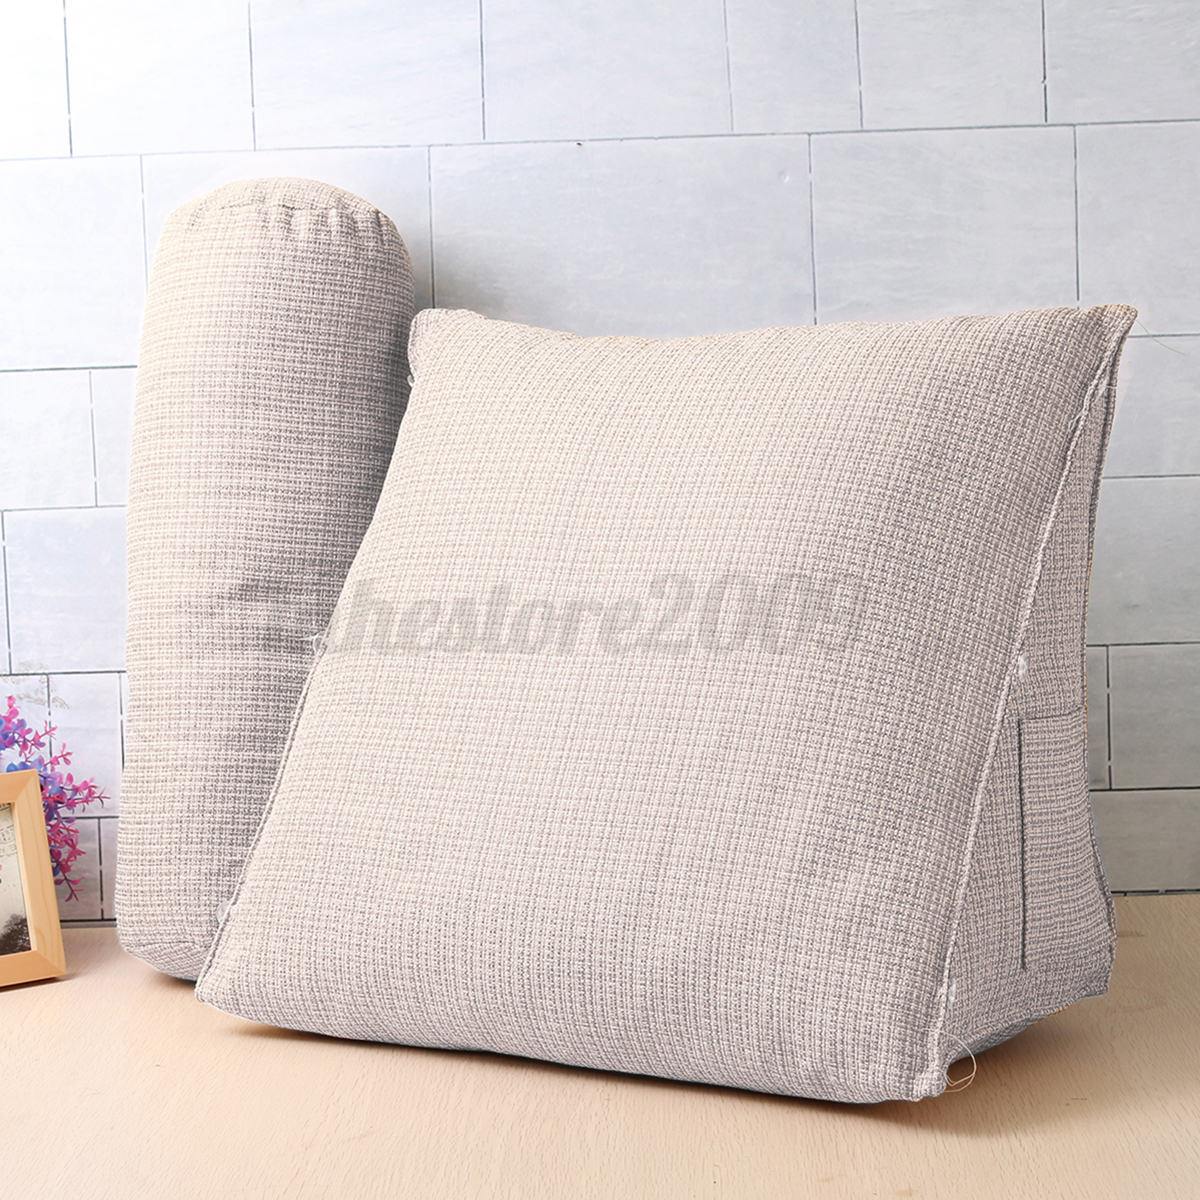 chair pillows for bed girls table and set big adjustable sofa office rest neck support